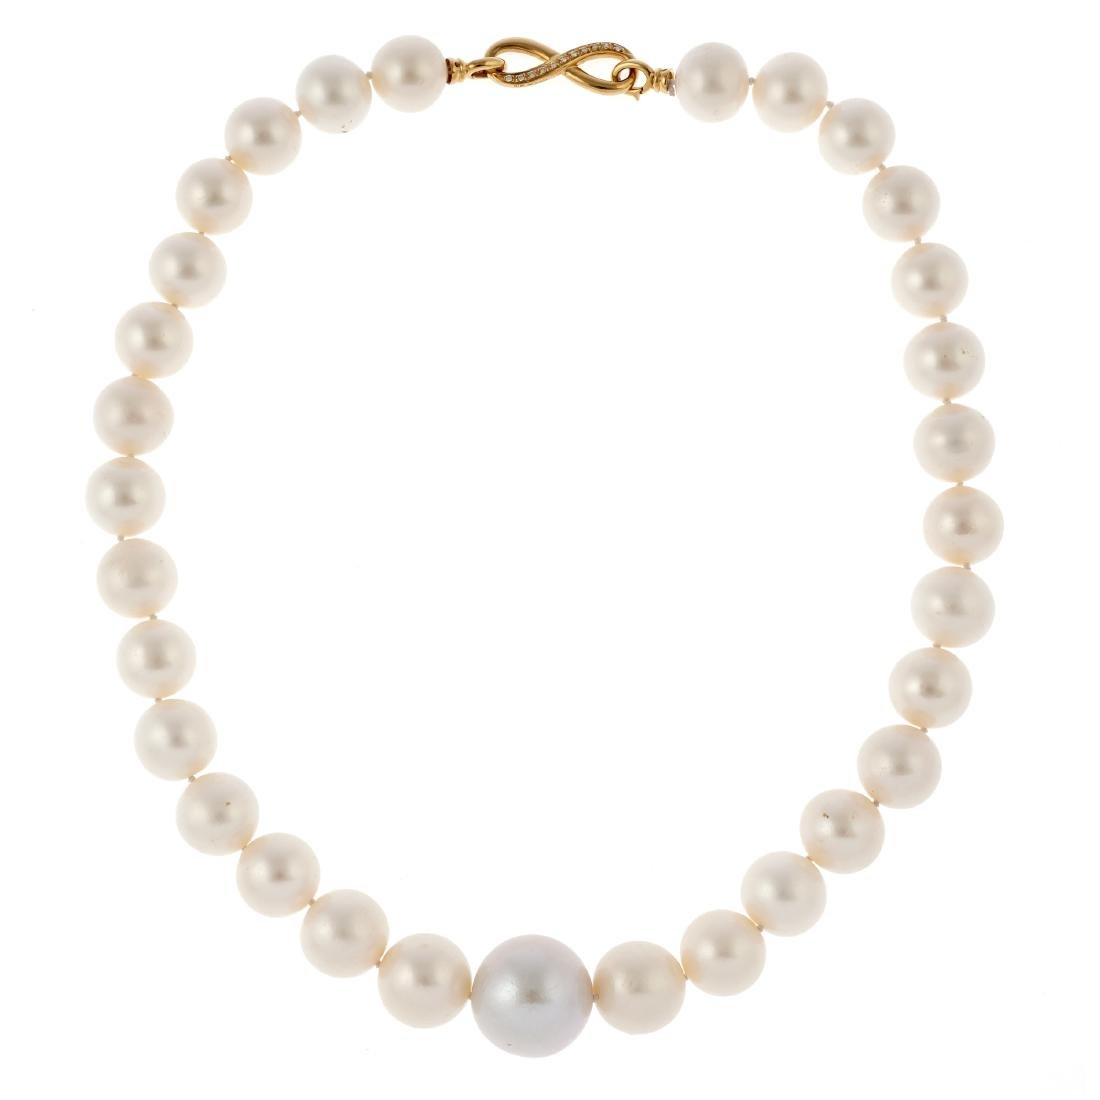 A South Sea cultured pearl, diamond, 18k necklace